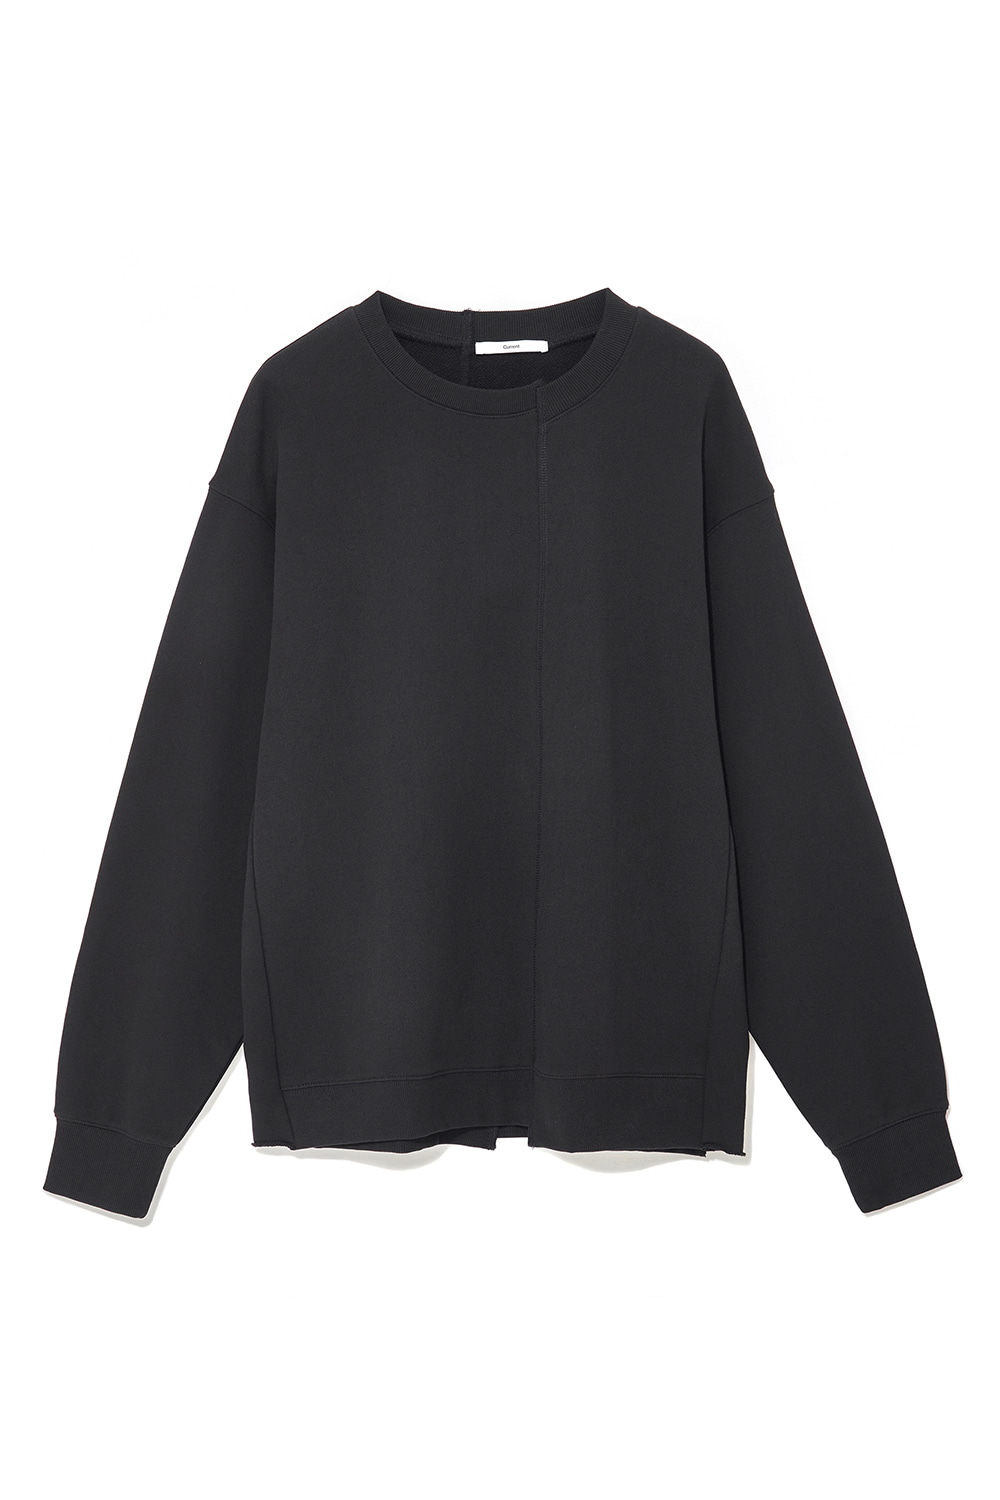 Unbalance Crewneck Men JA [Black] -10%